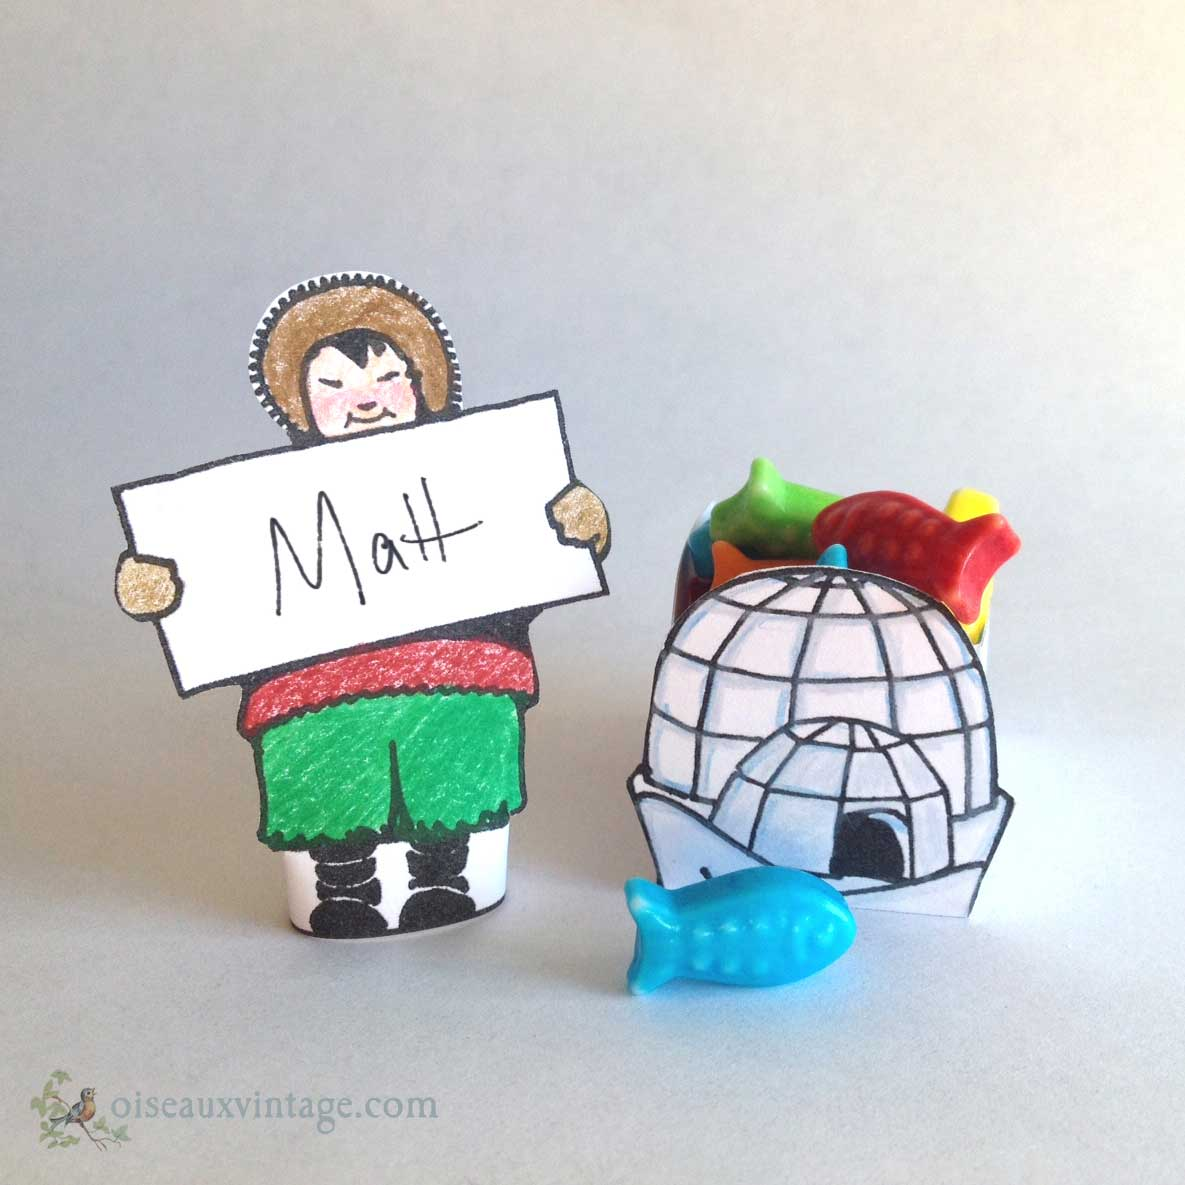 Iceland boy place card and igloo candy cup